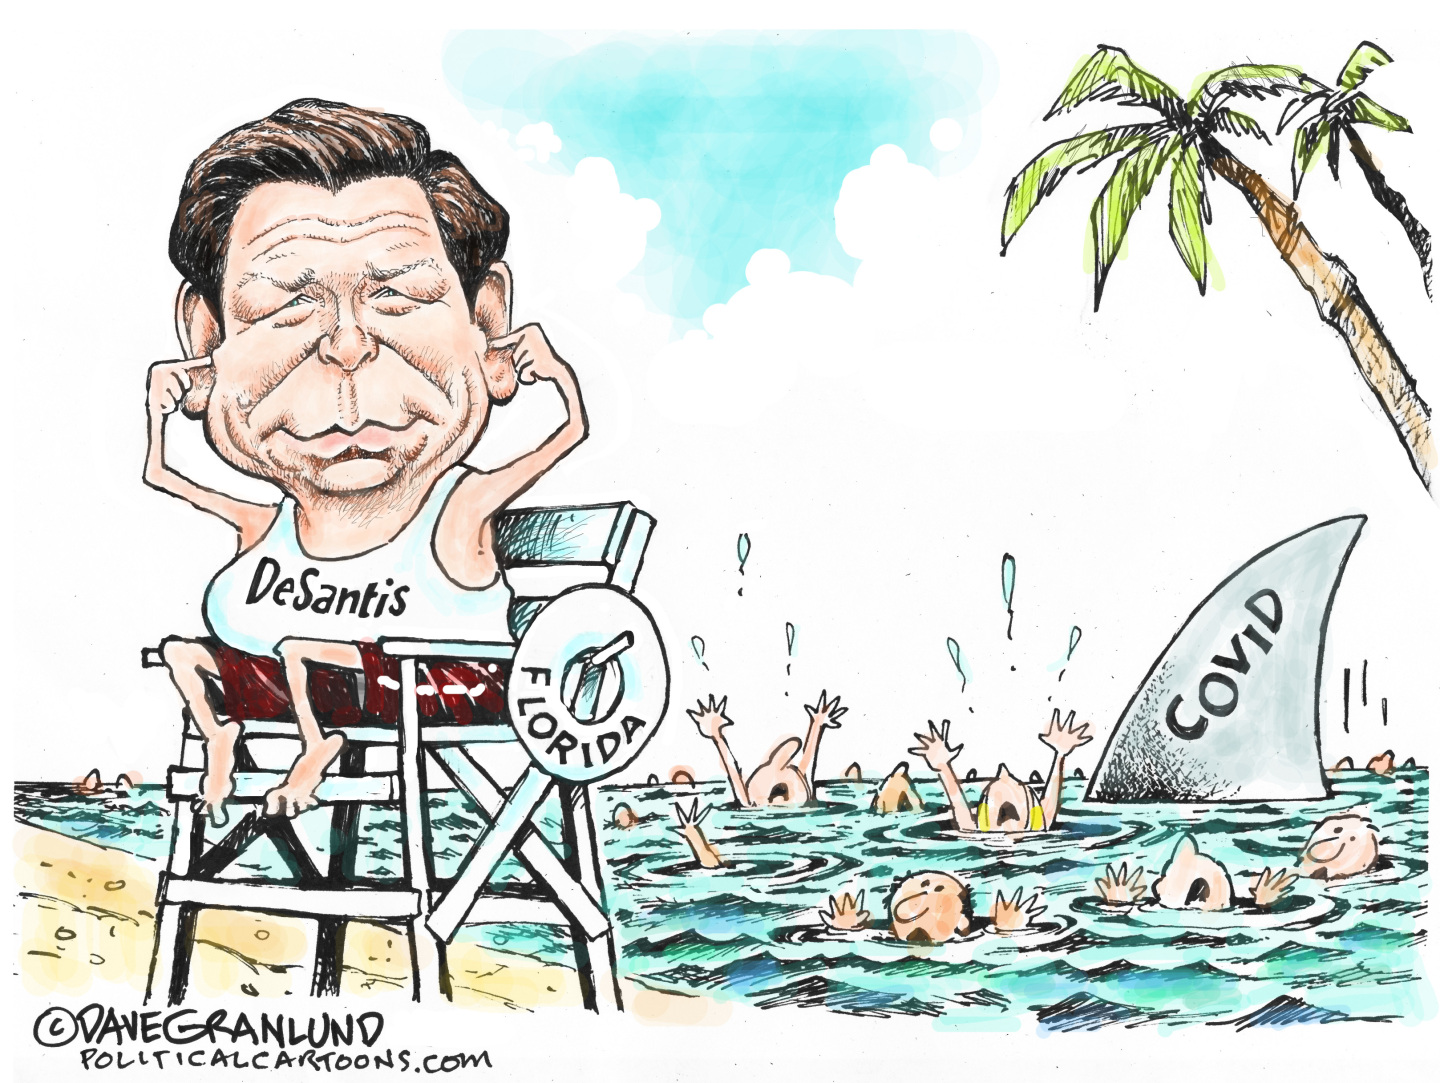 DeSantis jeopardizes the health of people in Florida to score political points.